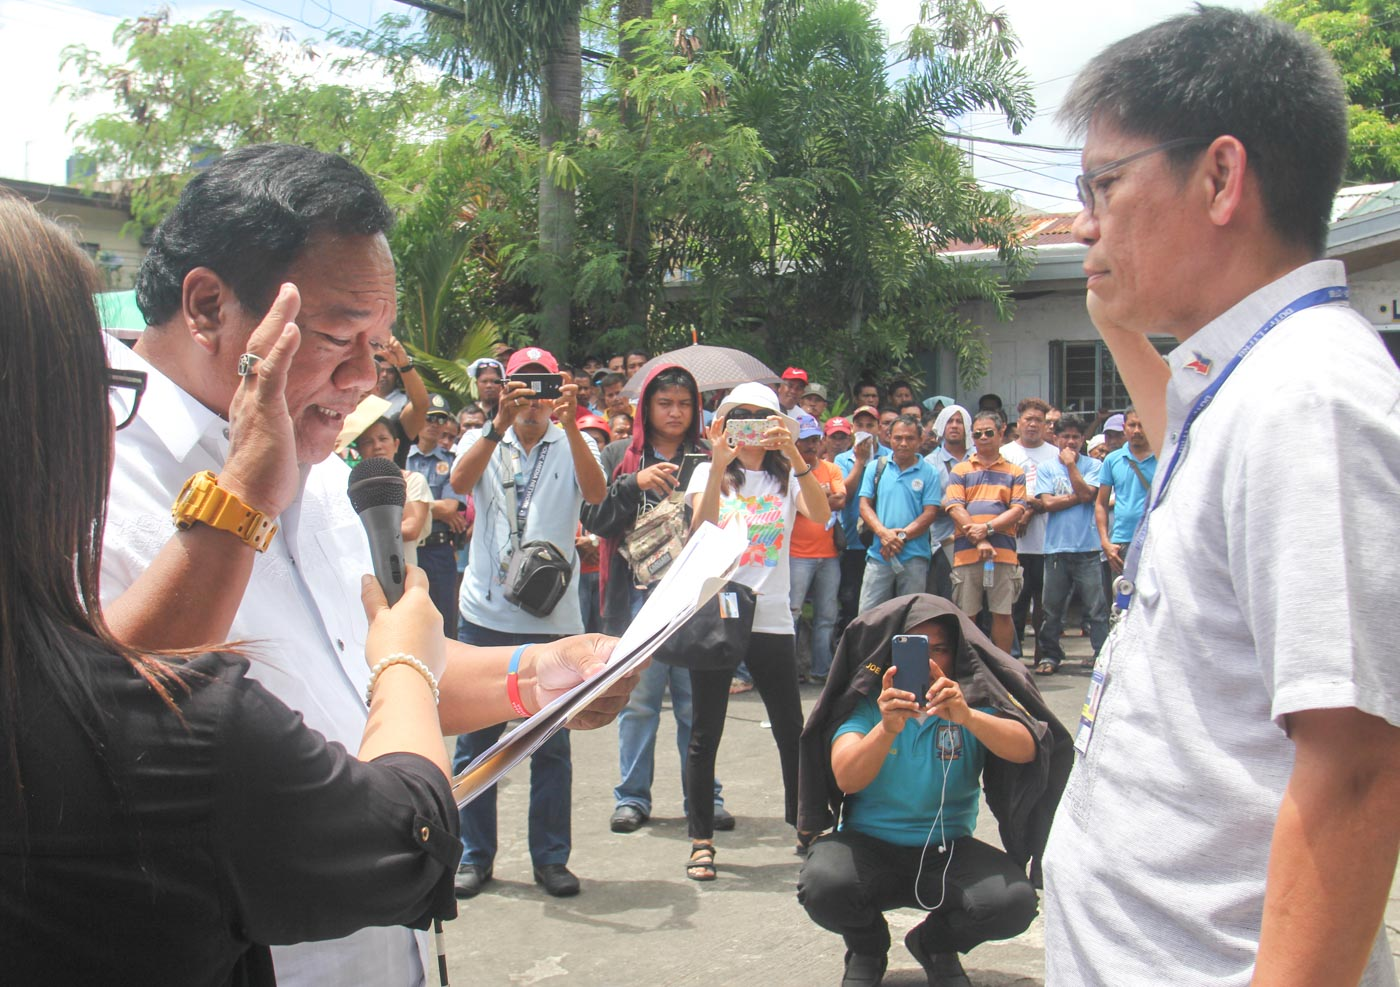 NEW BICOL CHIEF. LTFRB Chairman Martin Delgra III (right) administers the oath on the new LTFRB Bicol chief. Photo by Rhaydz Barcia/Rappler